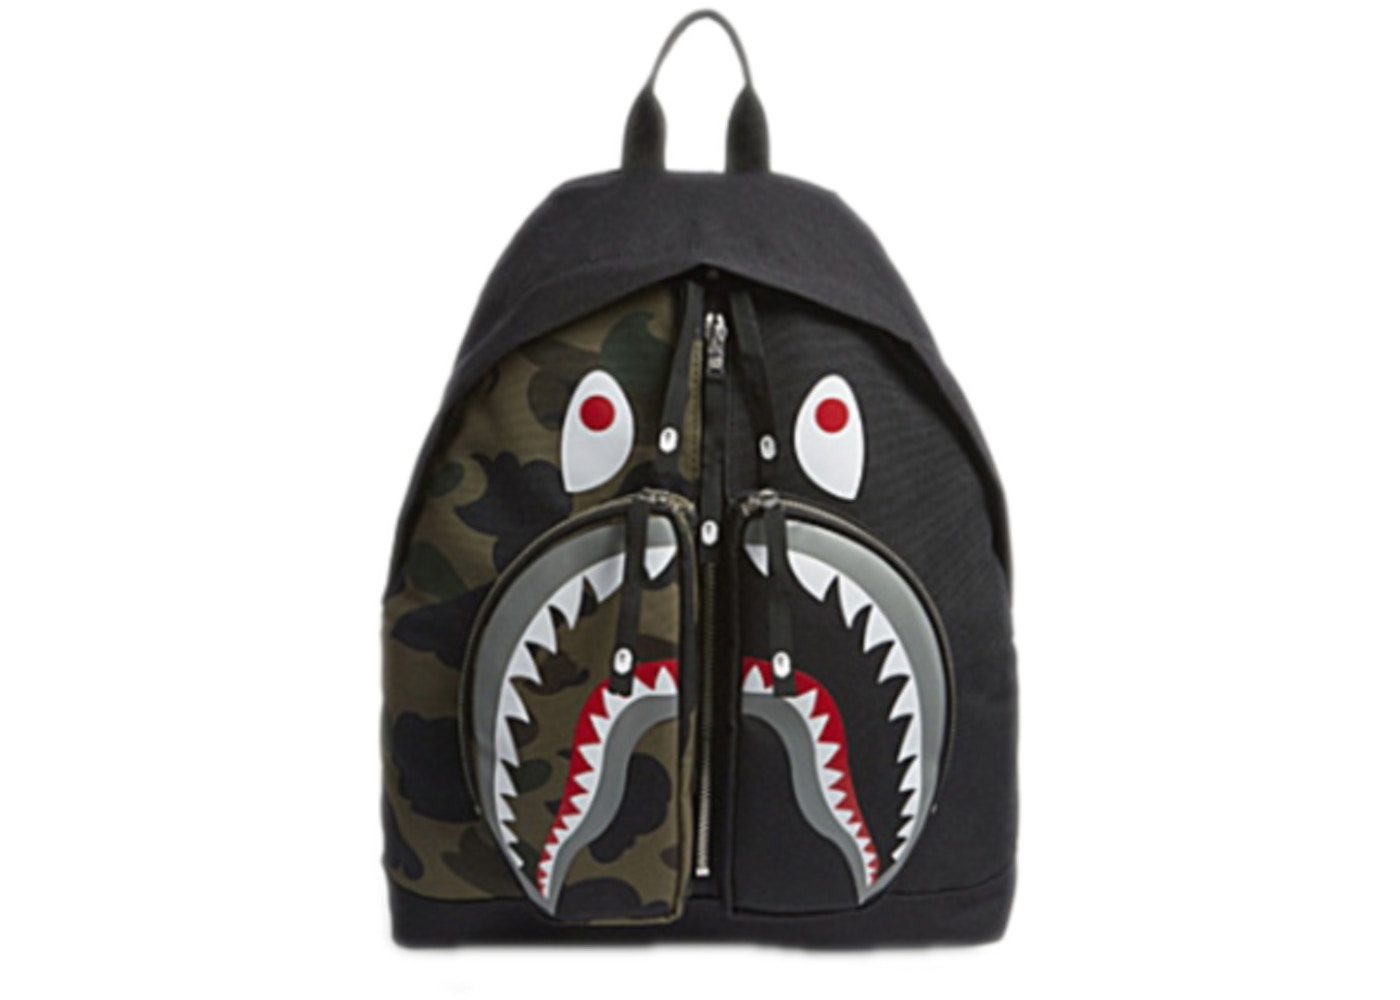 Bape Shark Backpack >> Bape 1st Camo Shark Day Pack Green Ss18